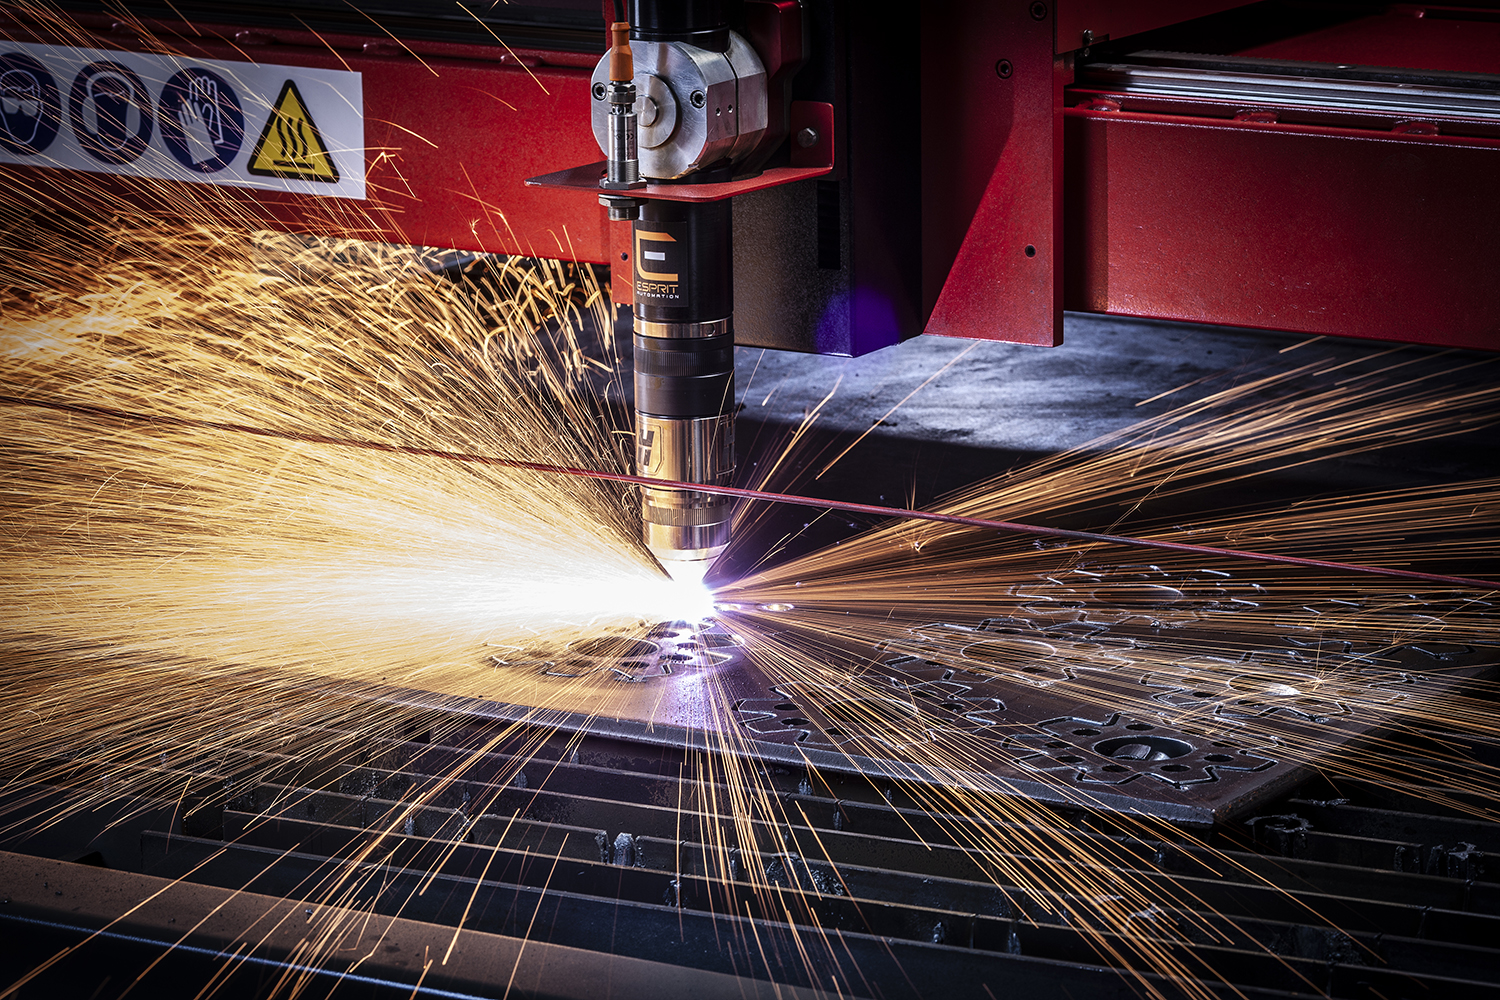 Dramatic photograph of plasma cutting metal with a shower of sparks